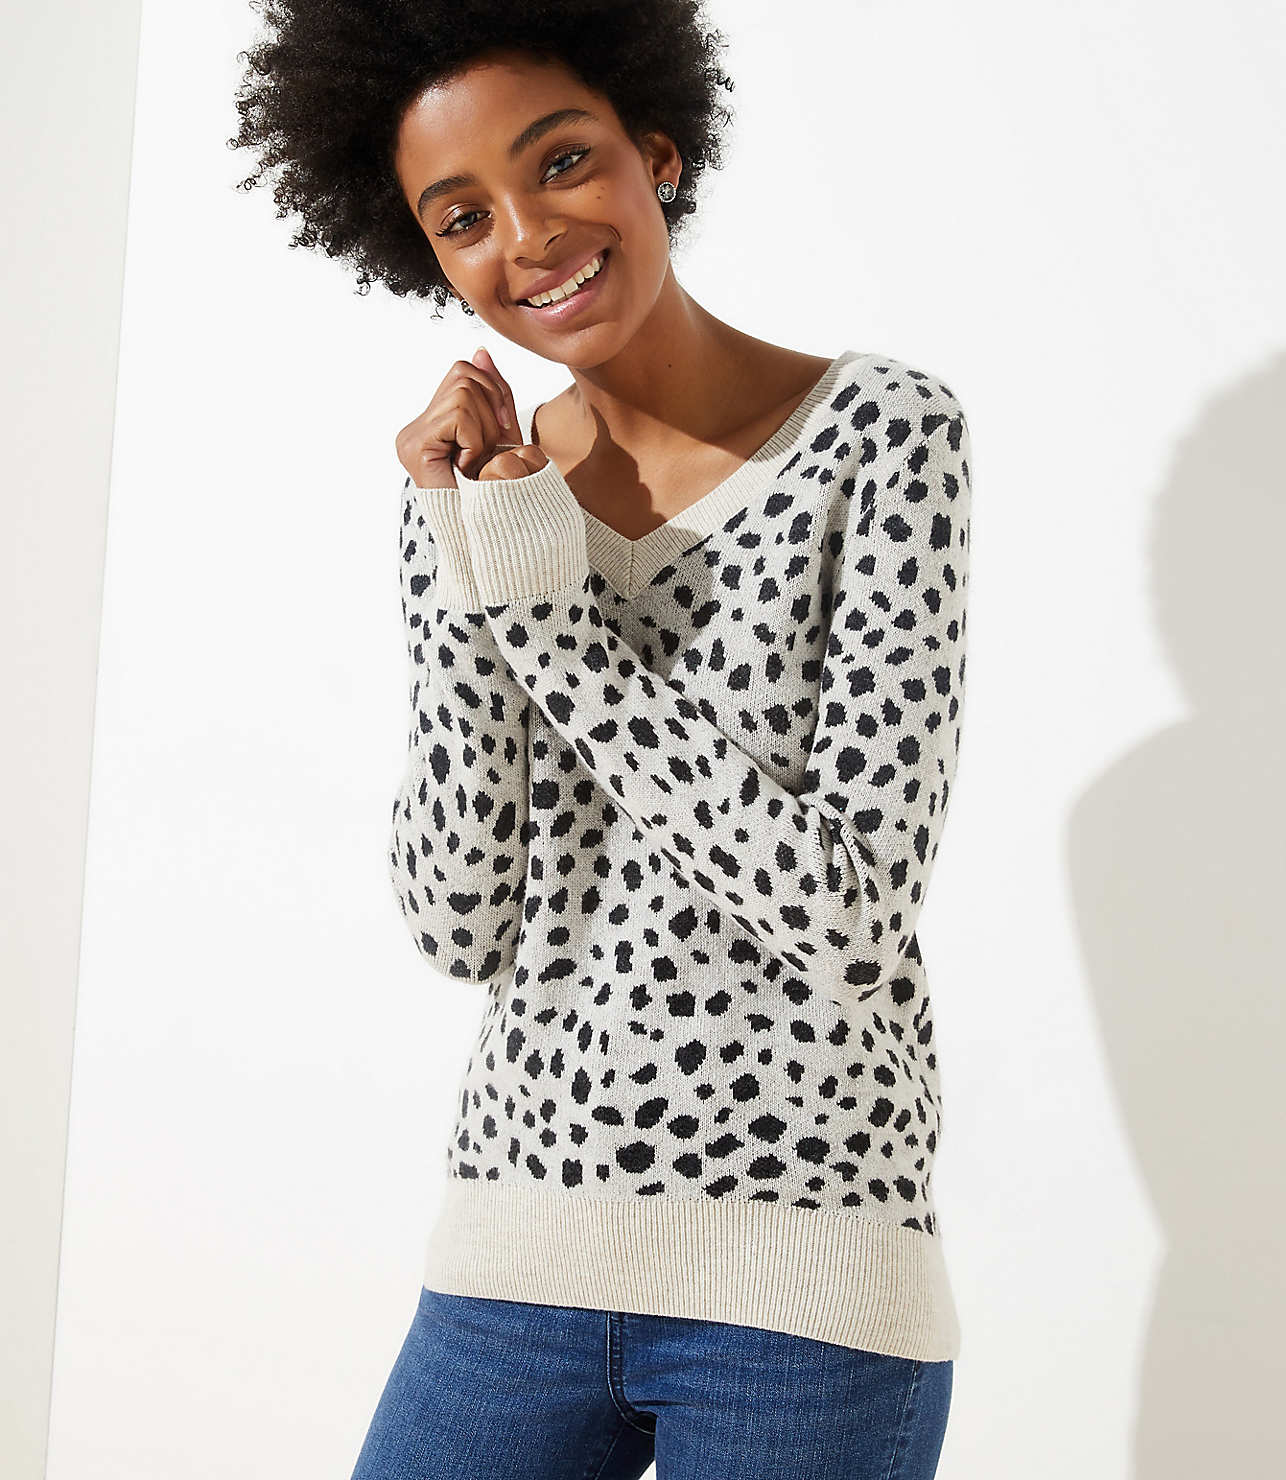 newest style cheapest sale great variety styles Leopard Print V-Neck Sweater | LOFT